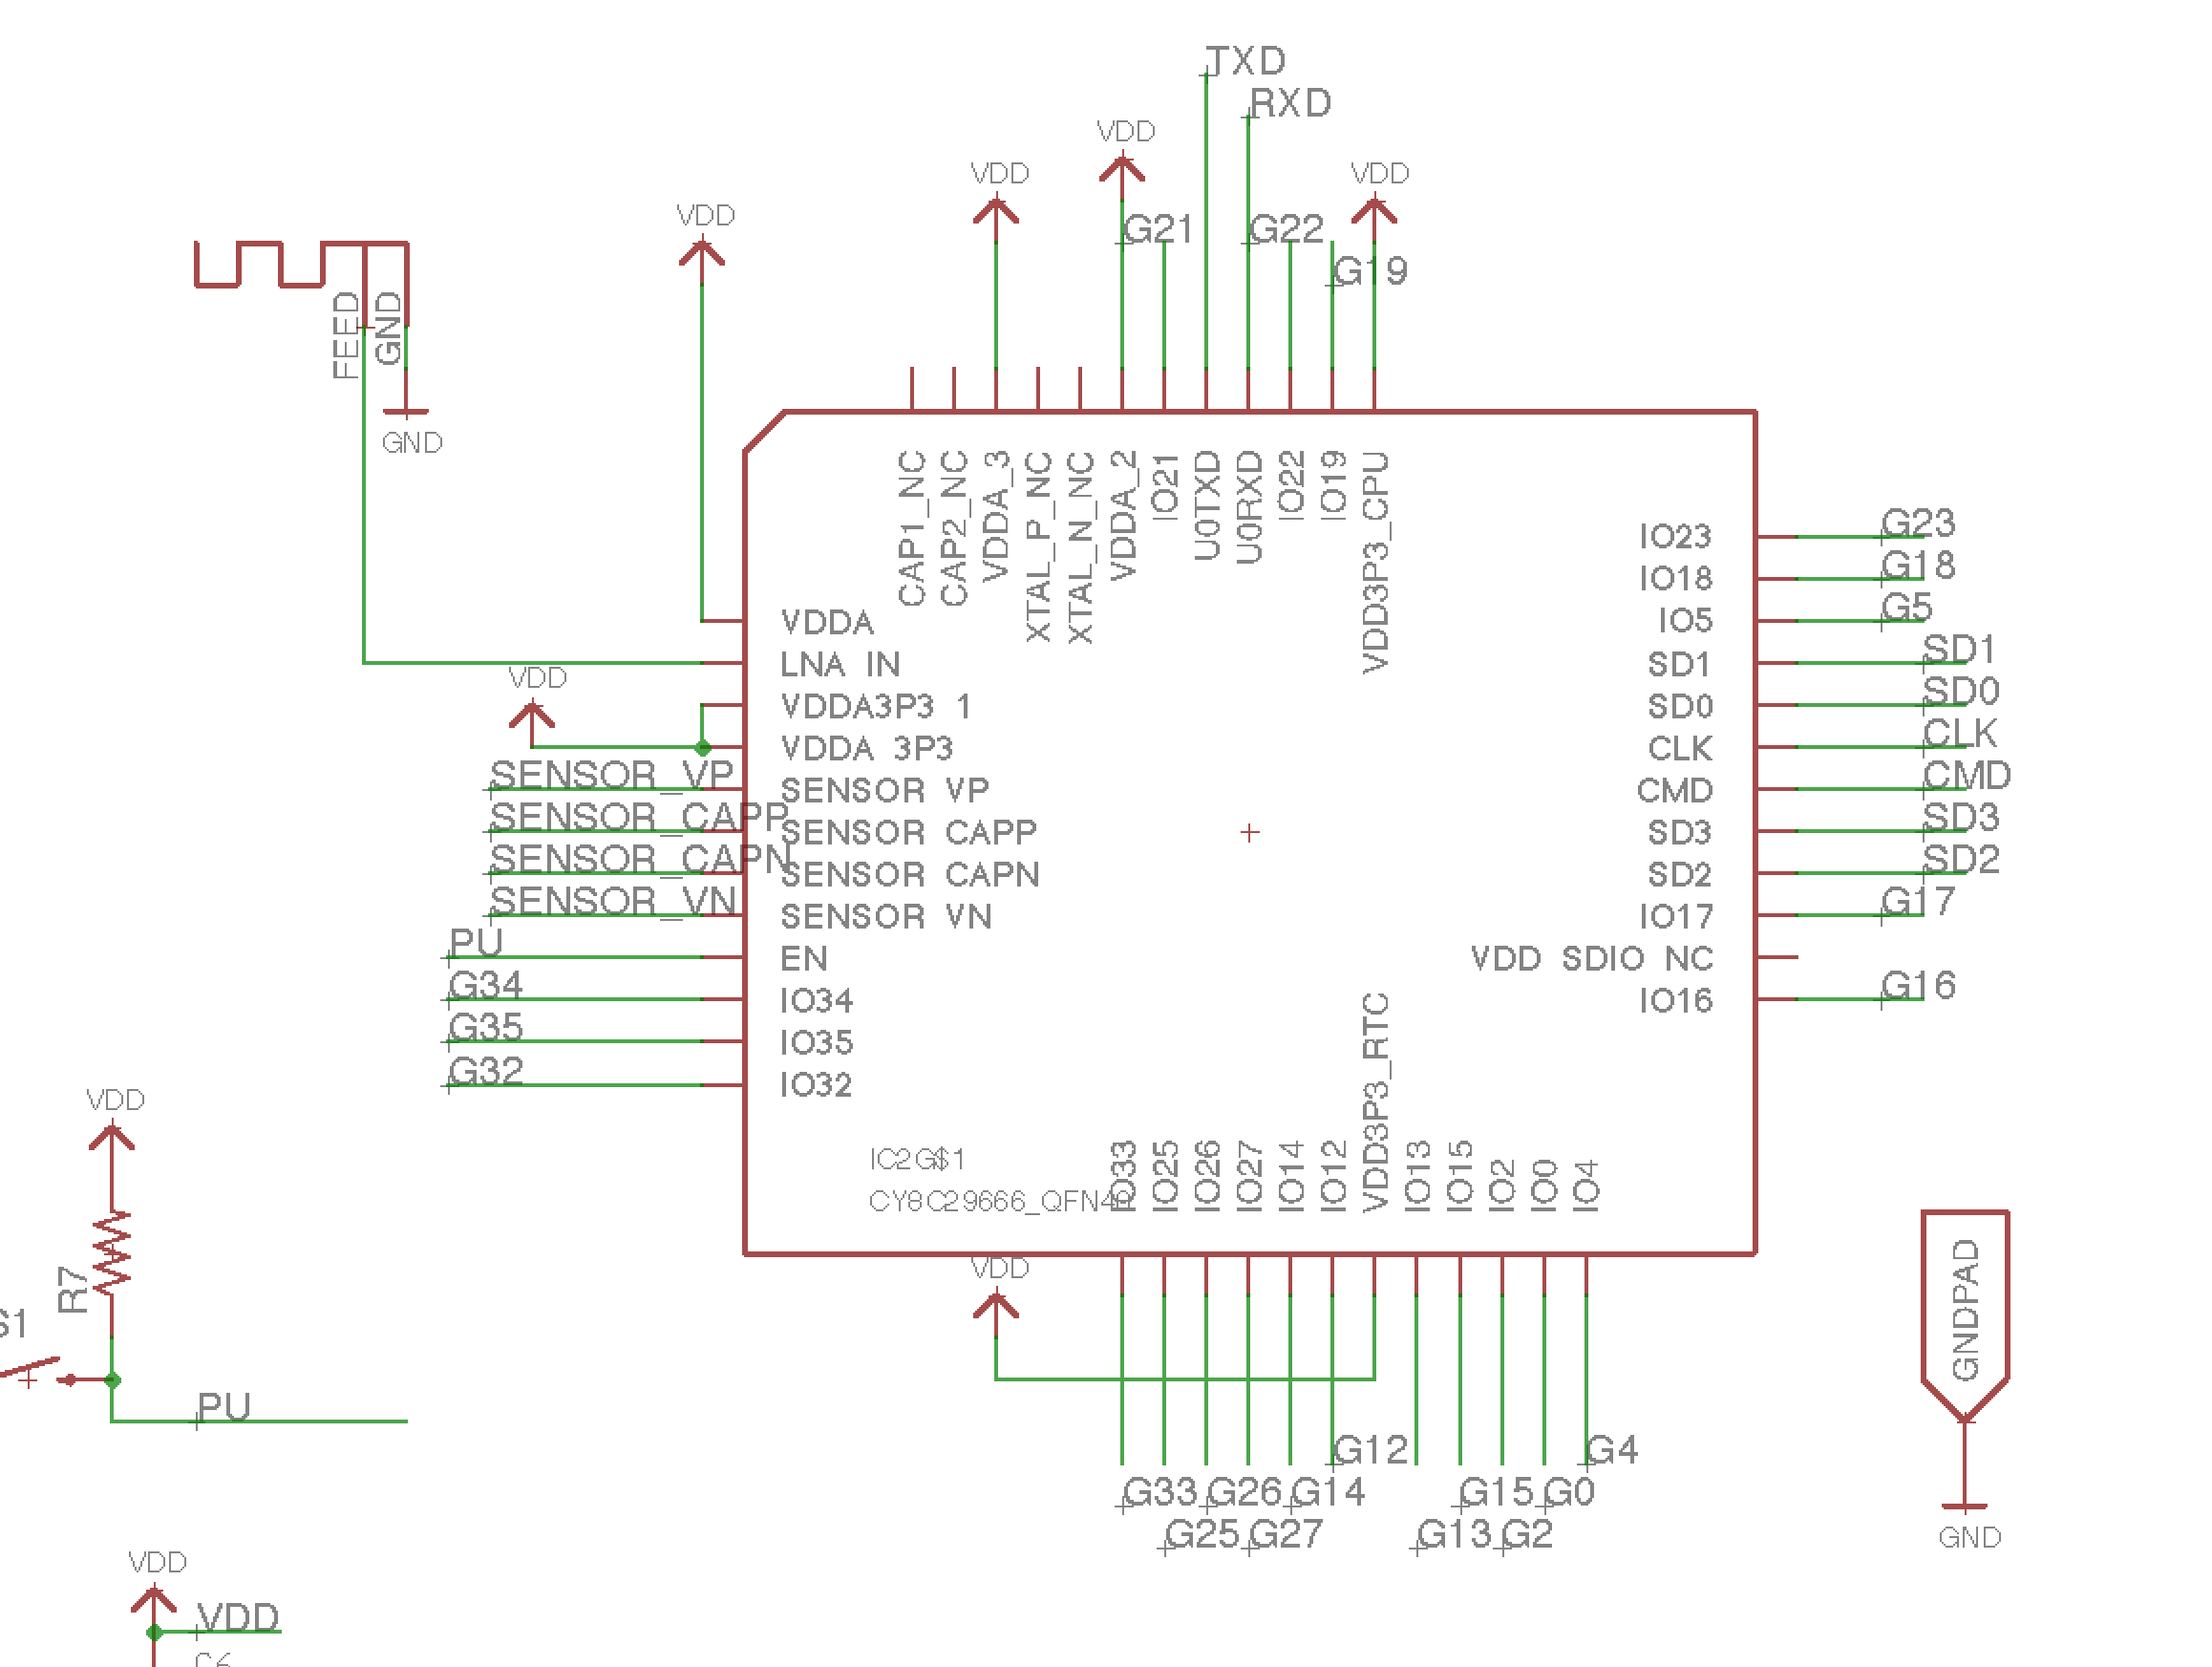 Eagle Library For Esp32 Pico D4 Details Printed Circuit Board Design Ive Made And Enjoying Designing Here Uploaded The File Which Modified Used Pcb